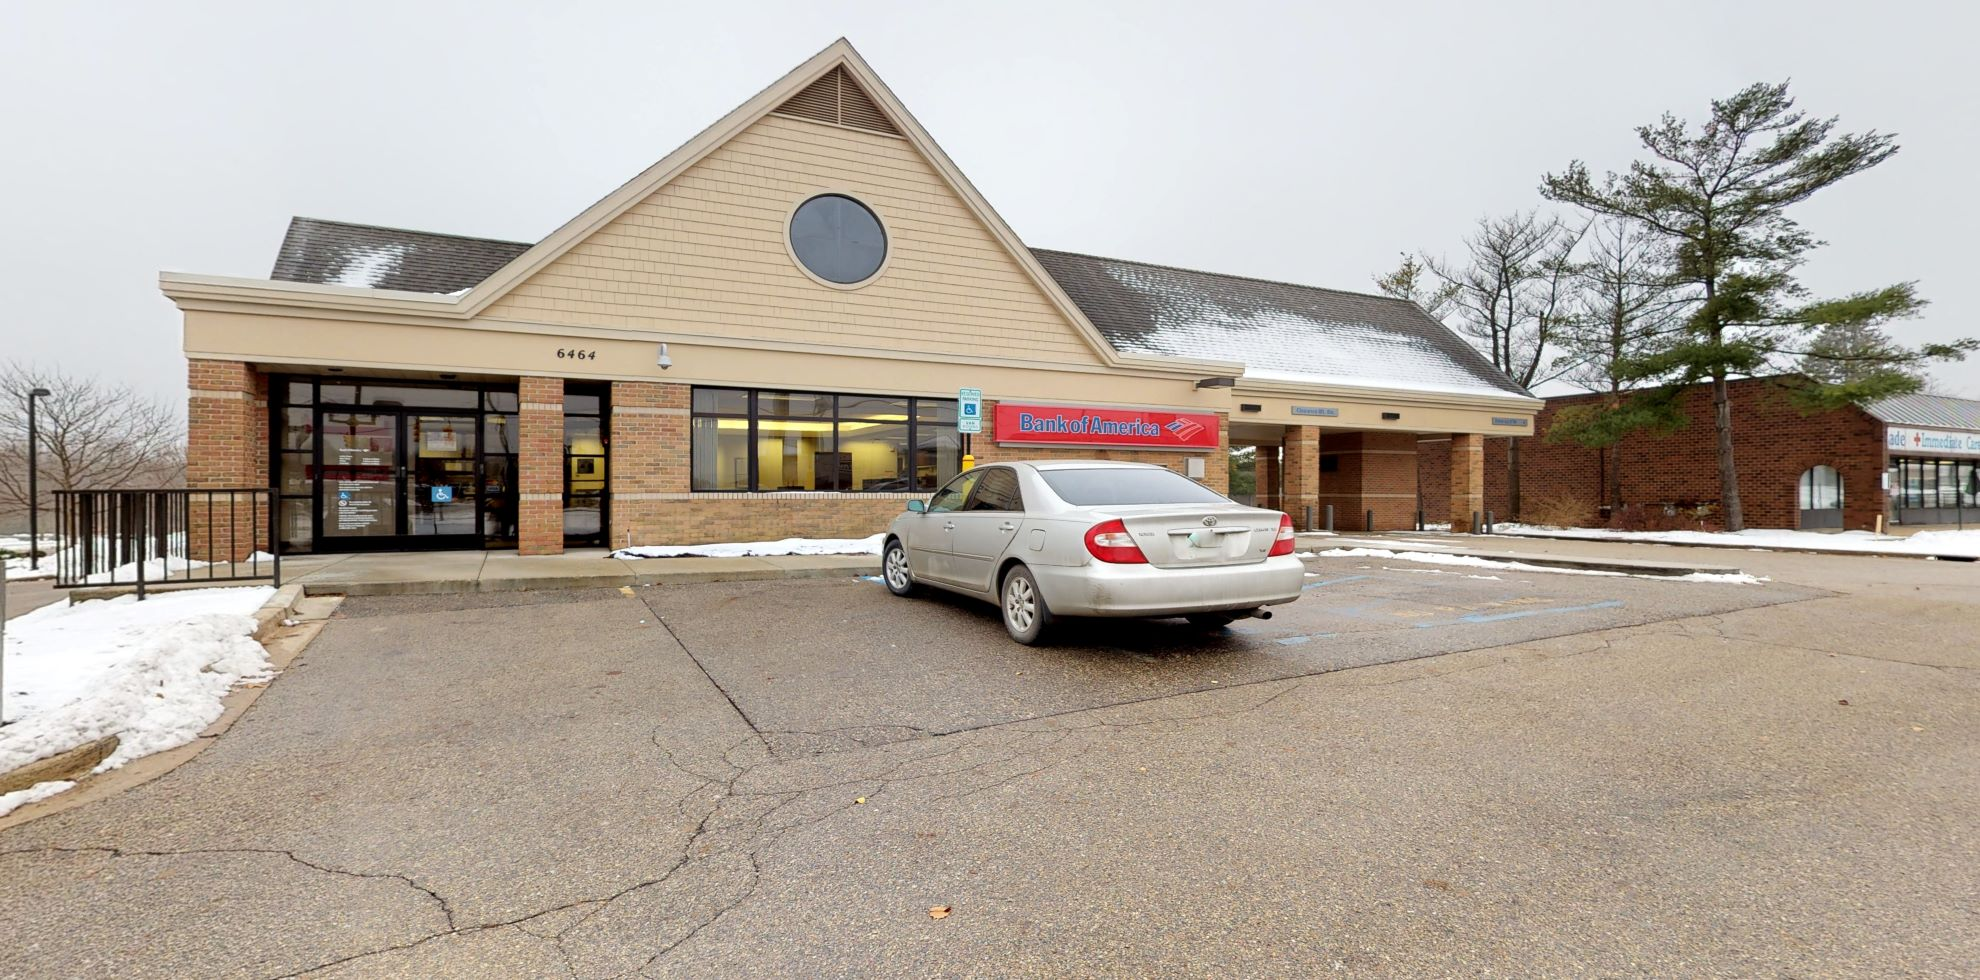 Bank of America financial center with drive-thru ATM | 6464 28th St SE, Grand Rapids, MI 49546